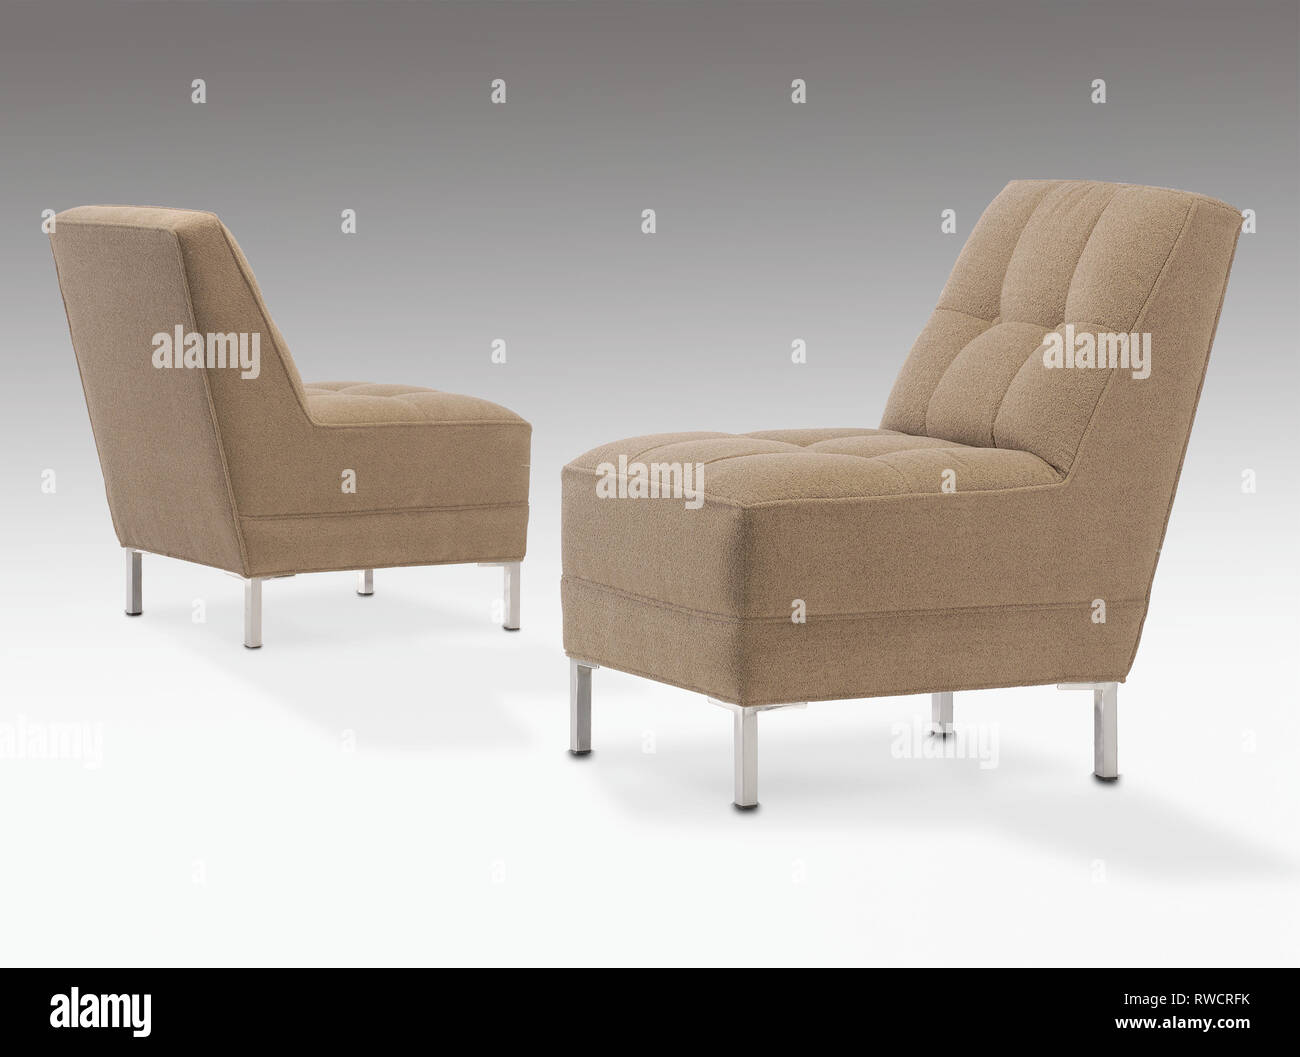 Marvelous Mid Century Modern Armless Chairs With Chrome Legs Stock Dailytribune Chair Design For Home Dailytribuneorg